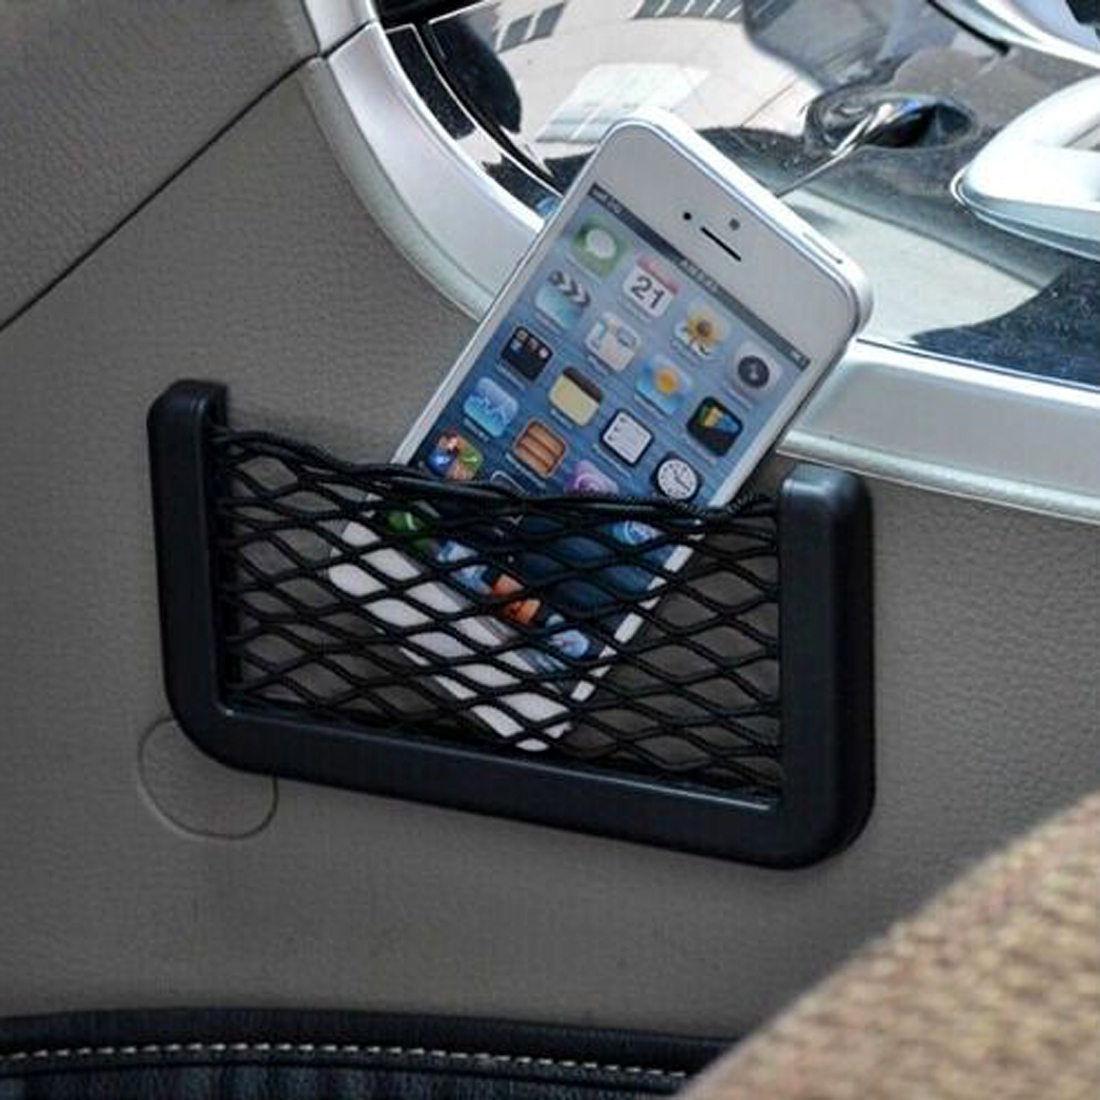 Hotsale 14.5*8.5 cm Universal Auto Car Seat Back Storage Net Bag Phone Holder Pocket Organizer free shipping(China (Mainland))